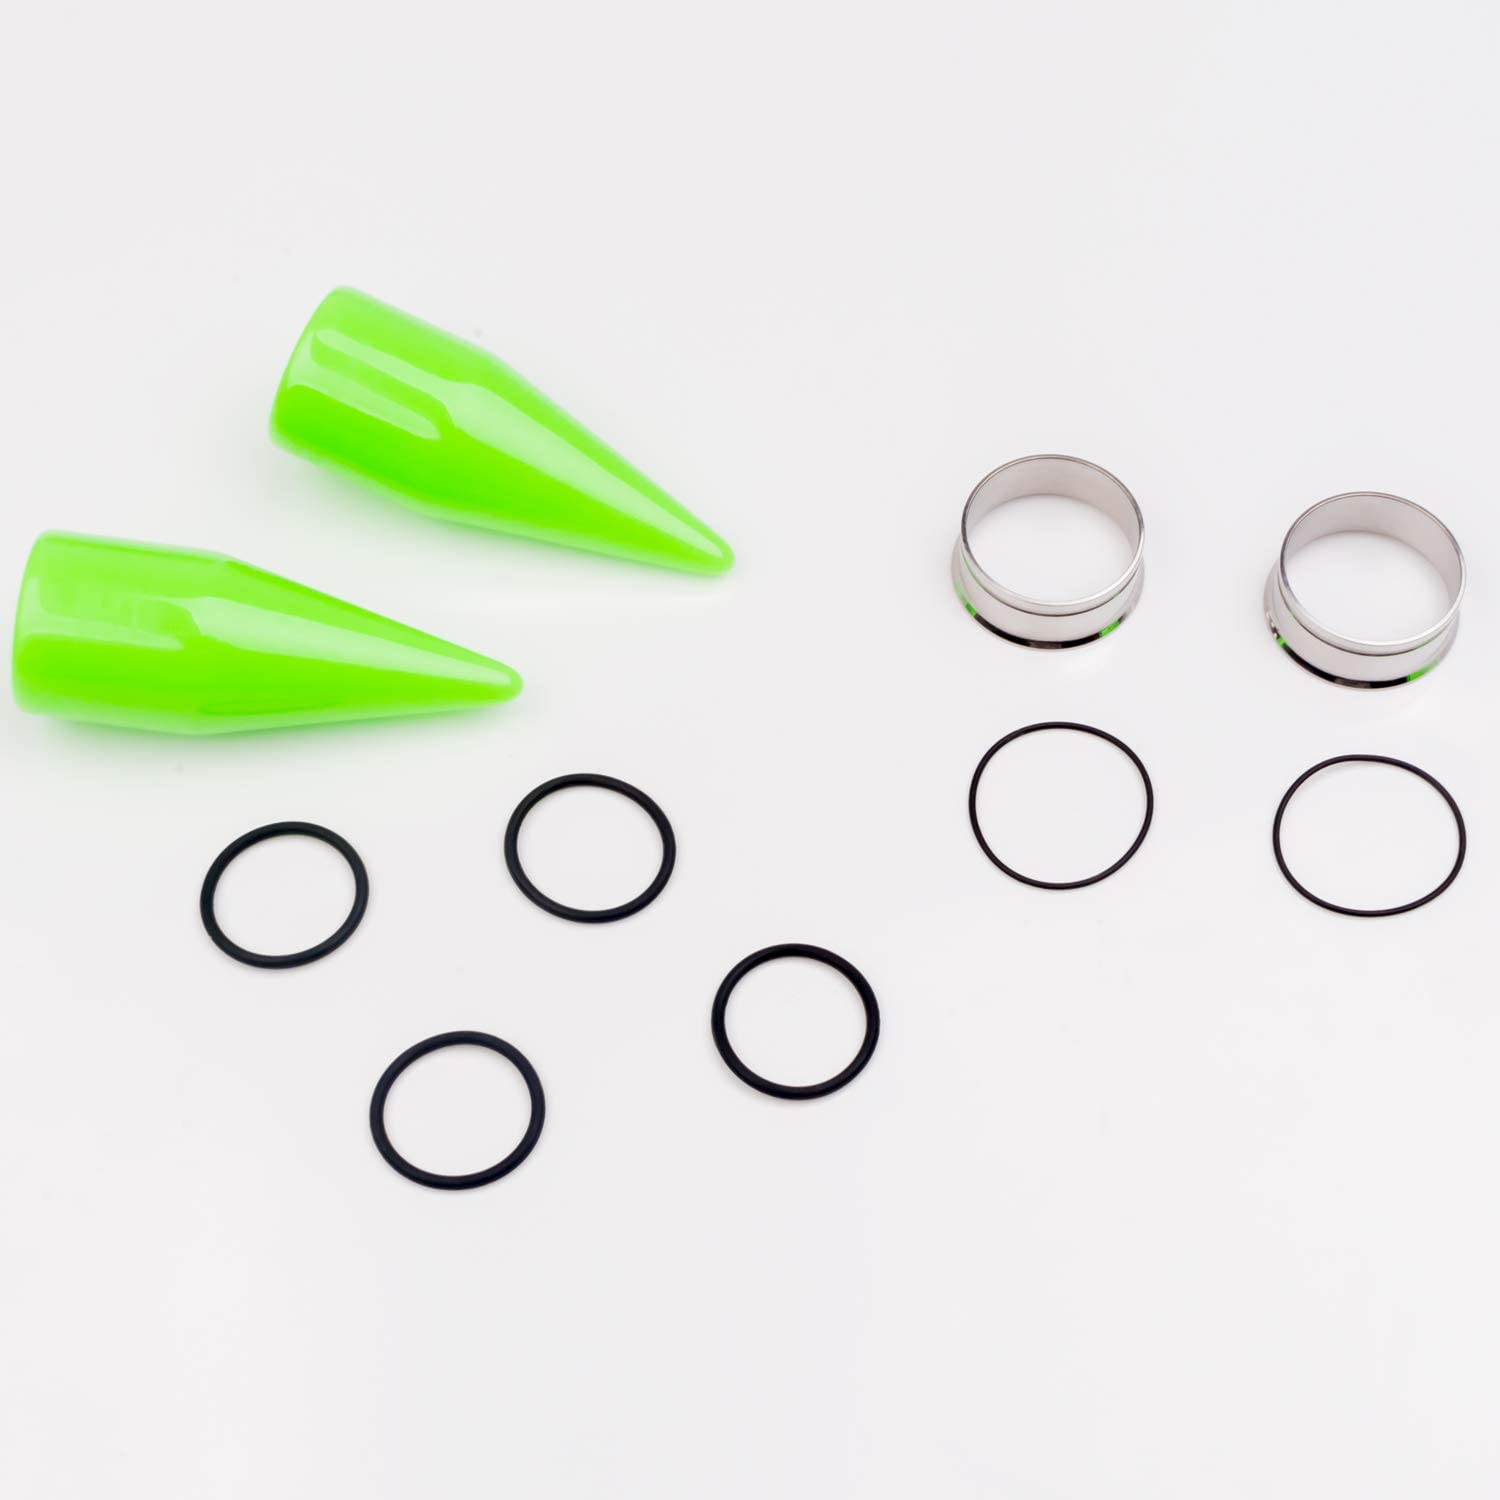 XSNA 32 Pcs Ear Stretching Kit Tapers Tunnels Plugs Surgical 00G - 1 inch Implant Grade Stainless Steel Gauges Body Piercing Jewelry